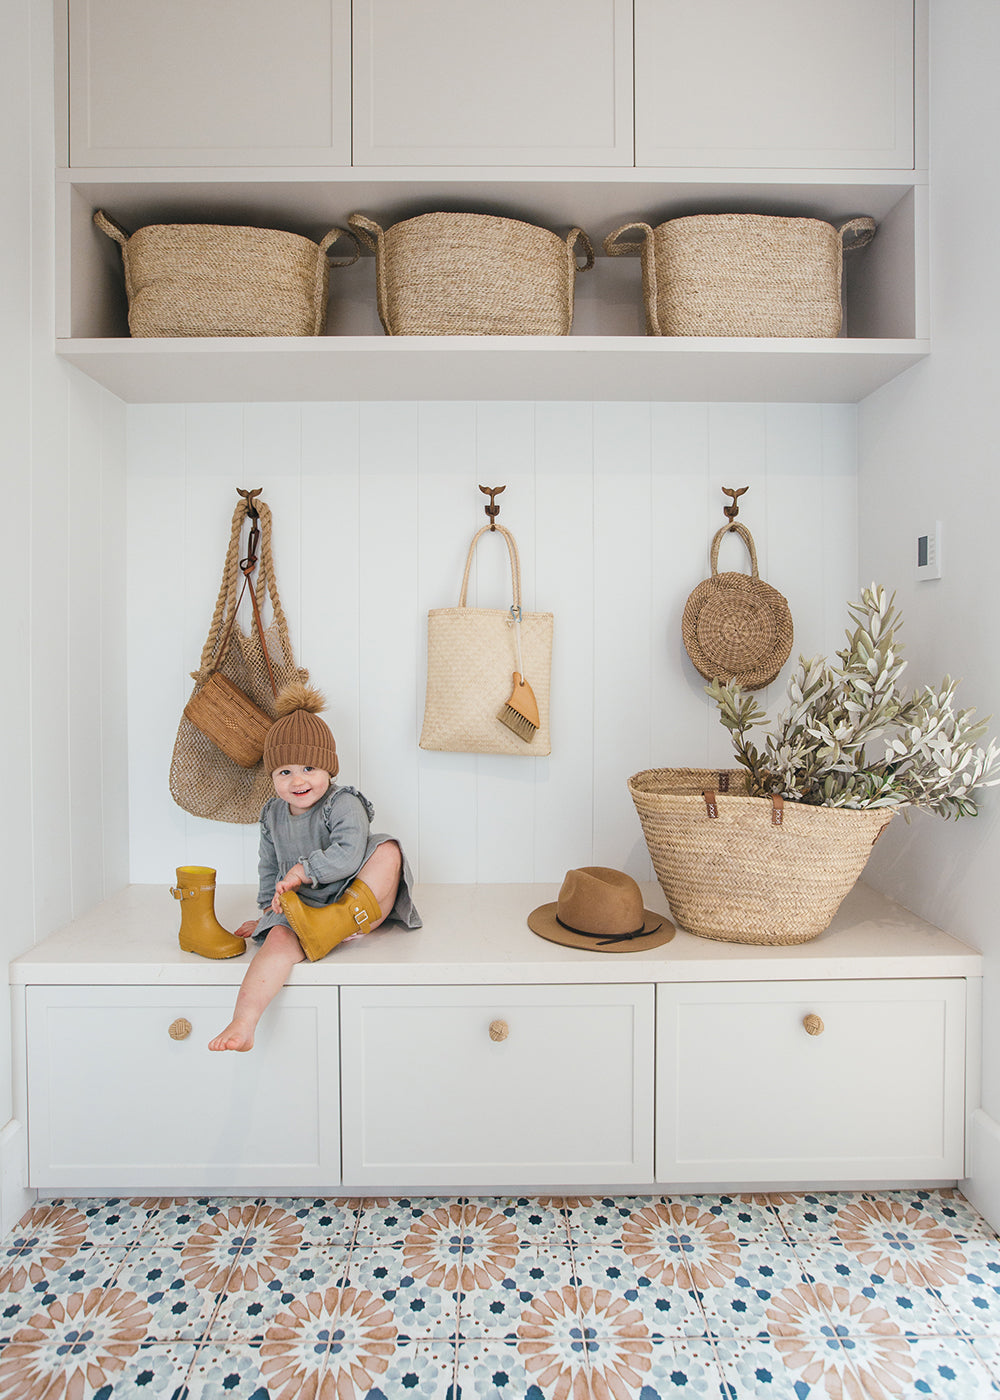 Woven baskets in Kara Demmrich's mudroom. Kara's son taking off his boots in the foreground.